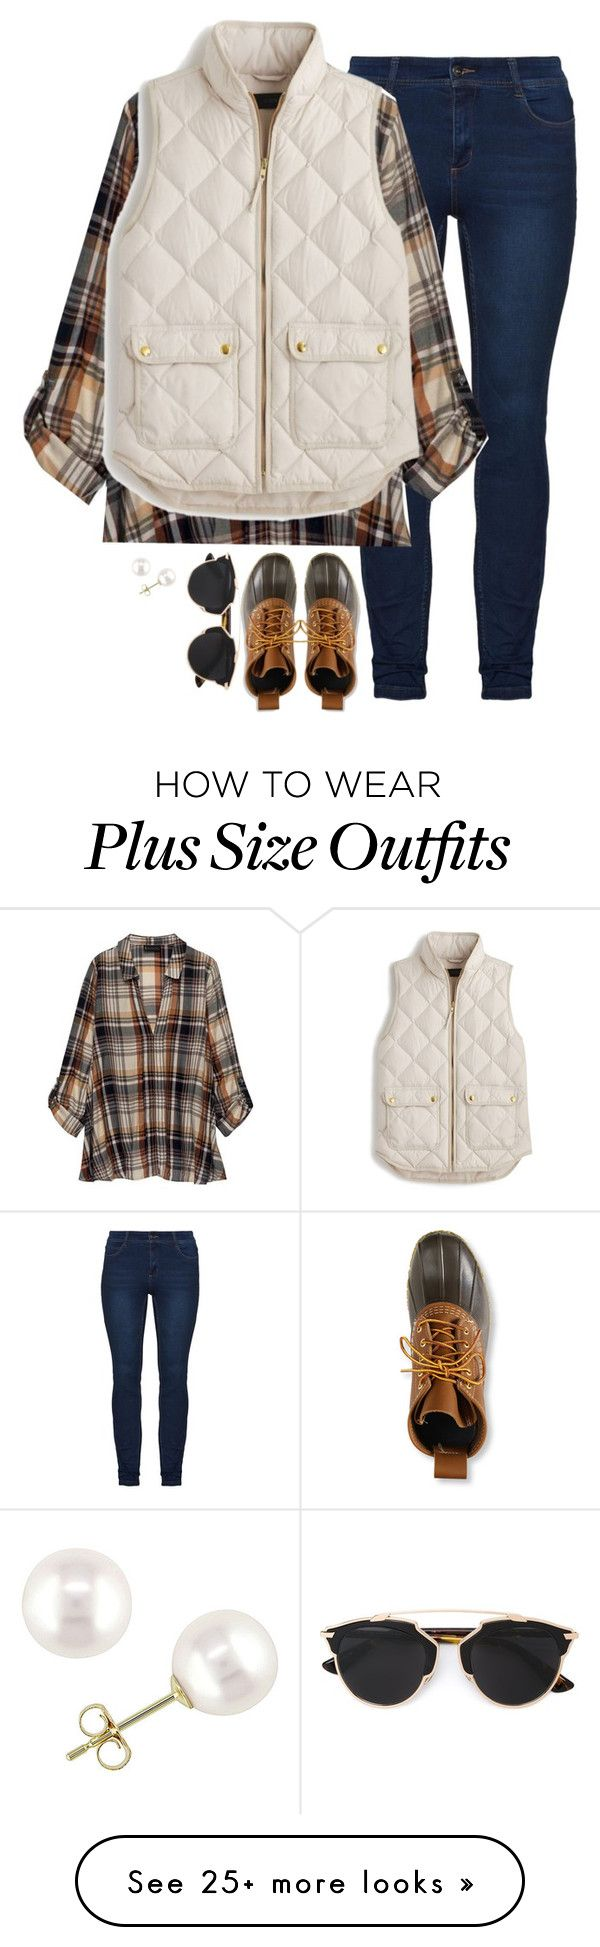 """Untitled #1488"" by southernstruttin on Polyvore featuring Bobeau, J.Crew, L.L.Bean, Christian Dior and Miadora"